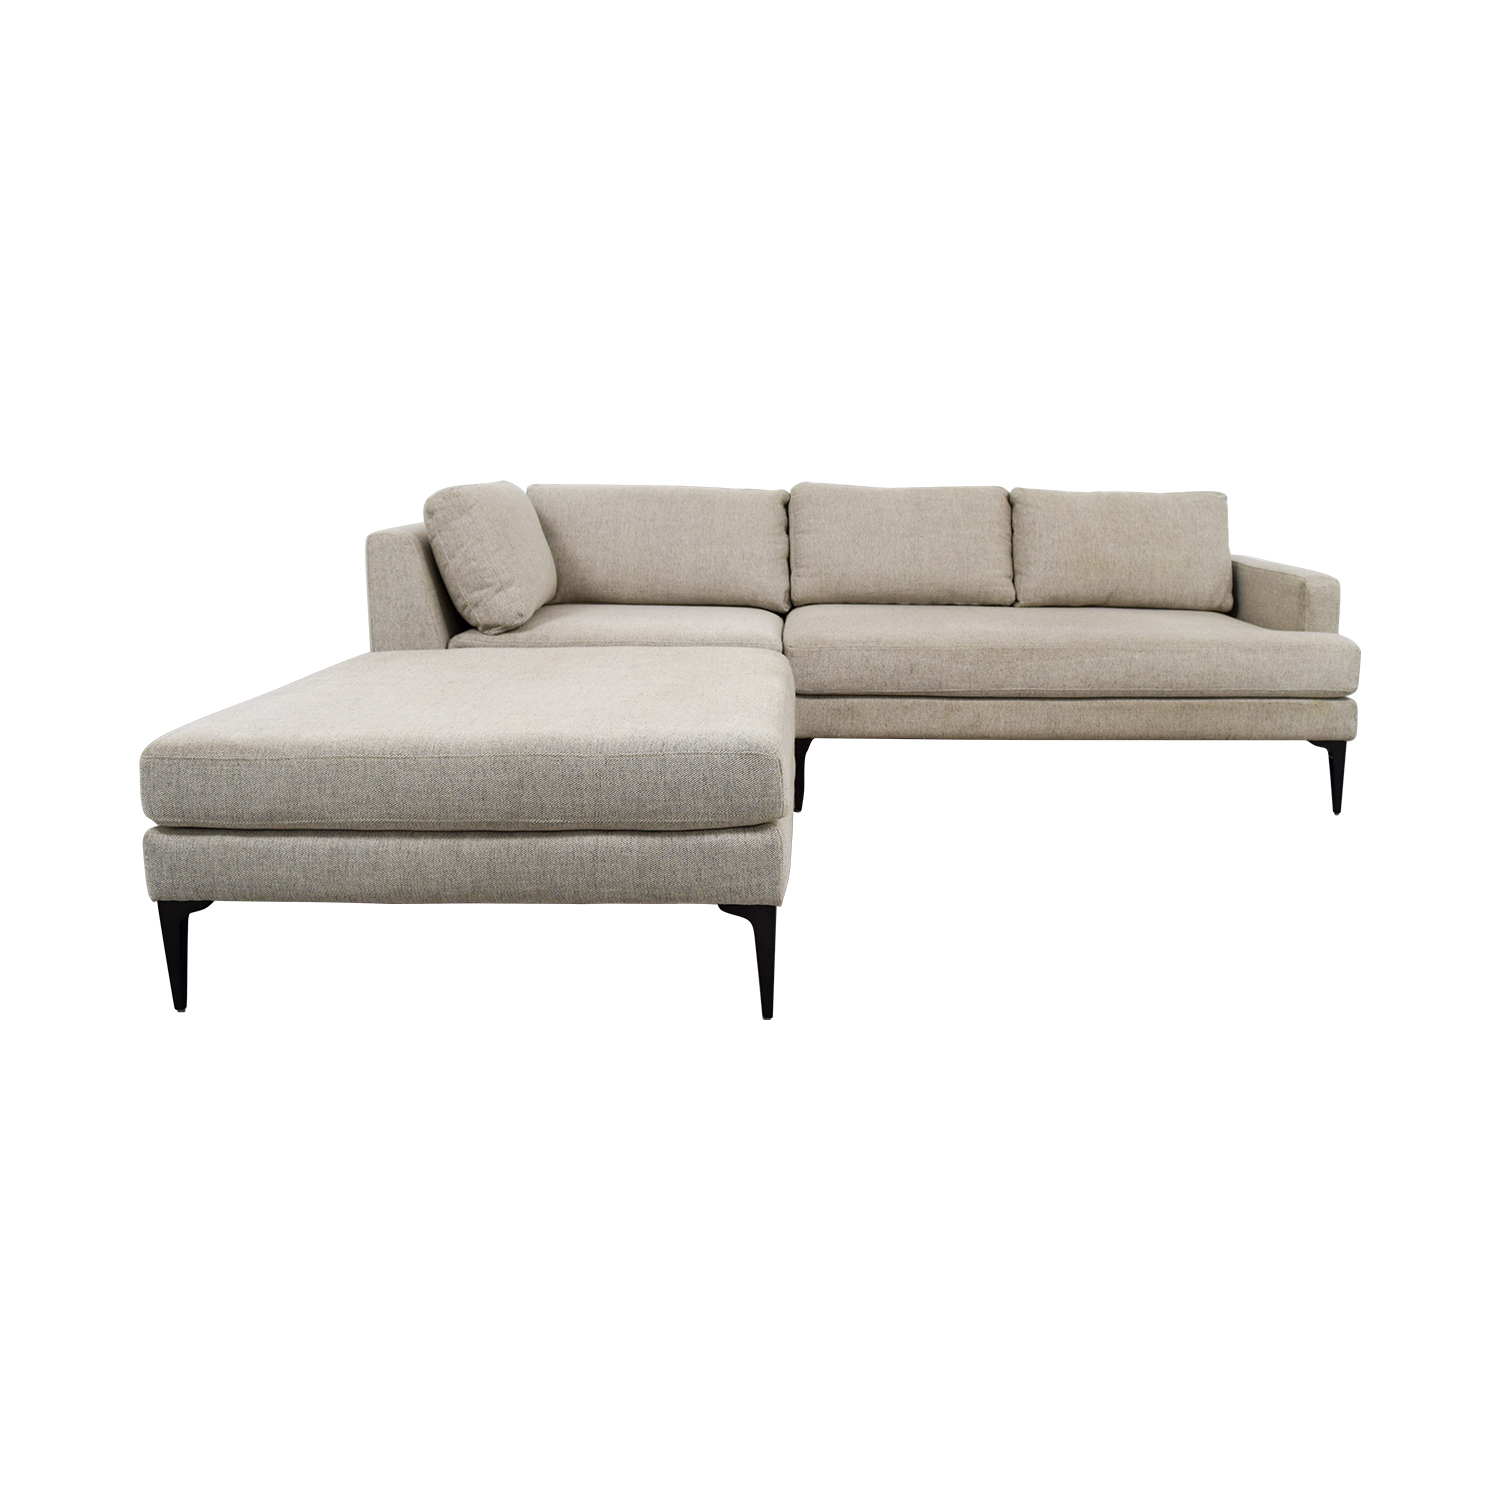 Sofa sectionals near me modern sectional sofa slate grey for Berkline callisburgh sofa chaise